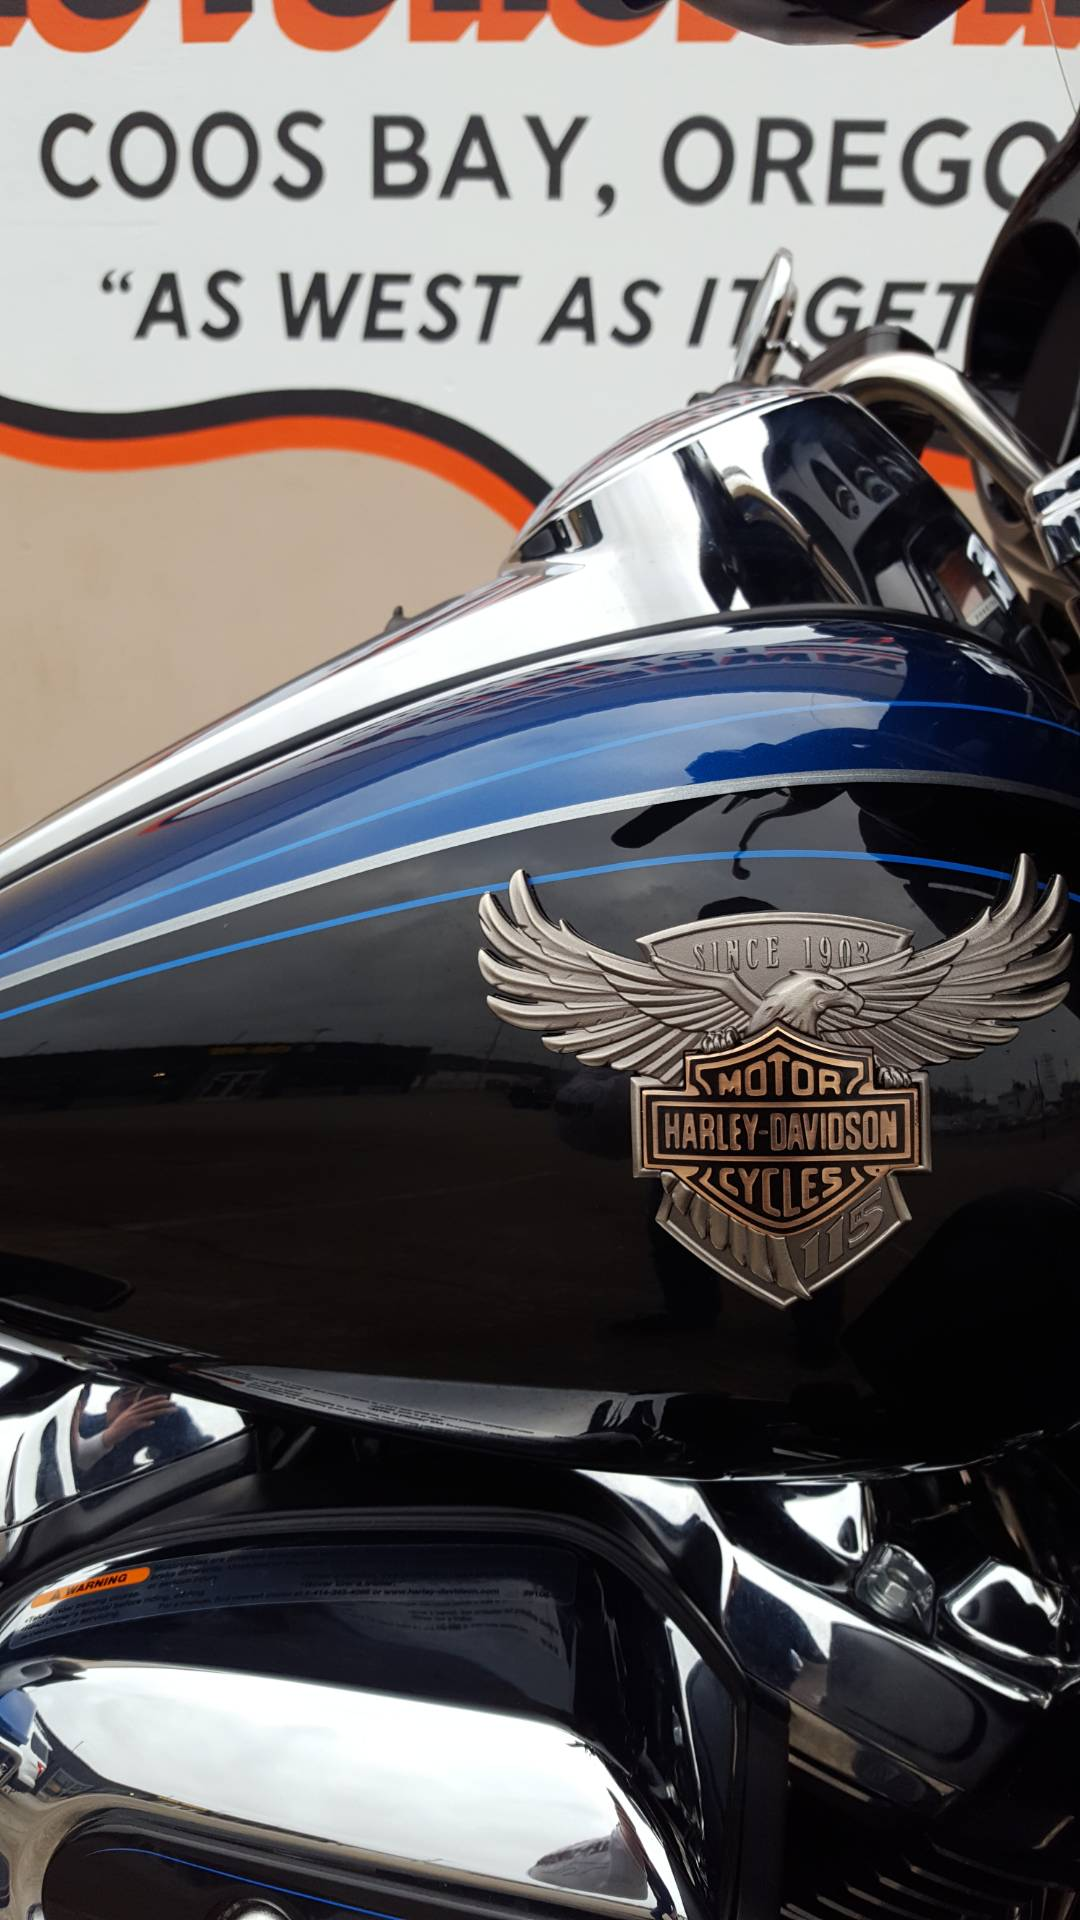 2018 Harley-Davidson 115th Anniversary Ultra Limited in Coos Bay, Oregon - Photo 4